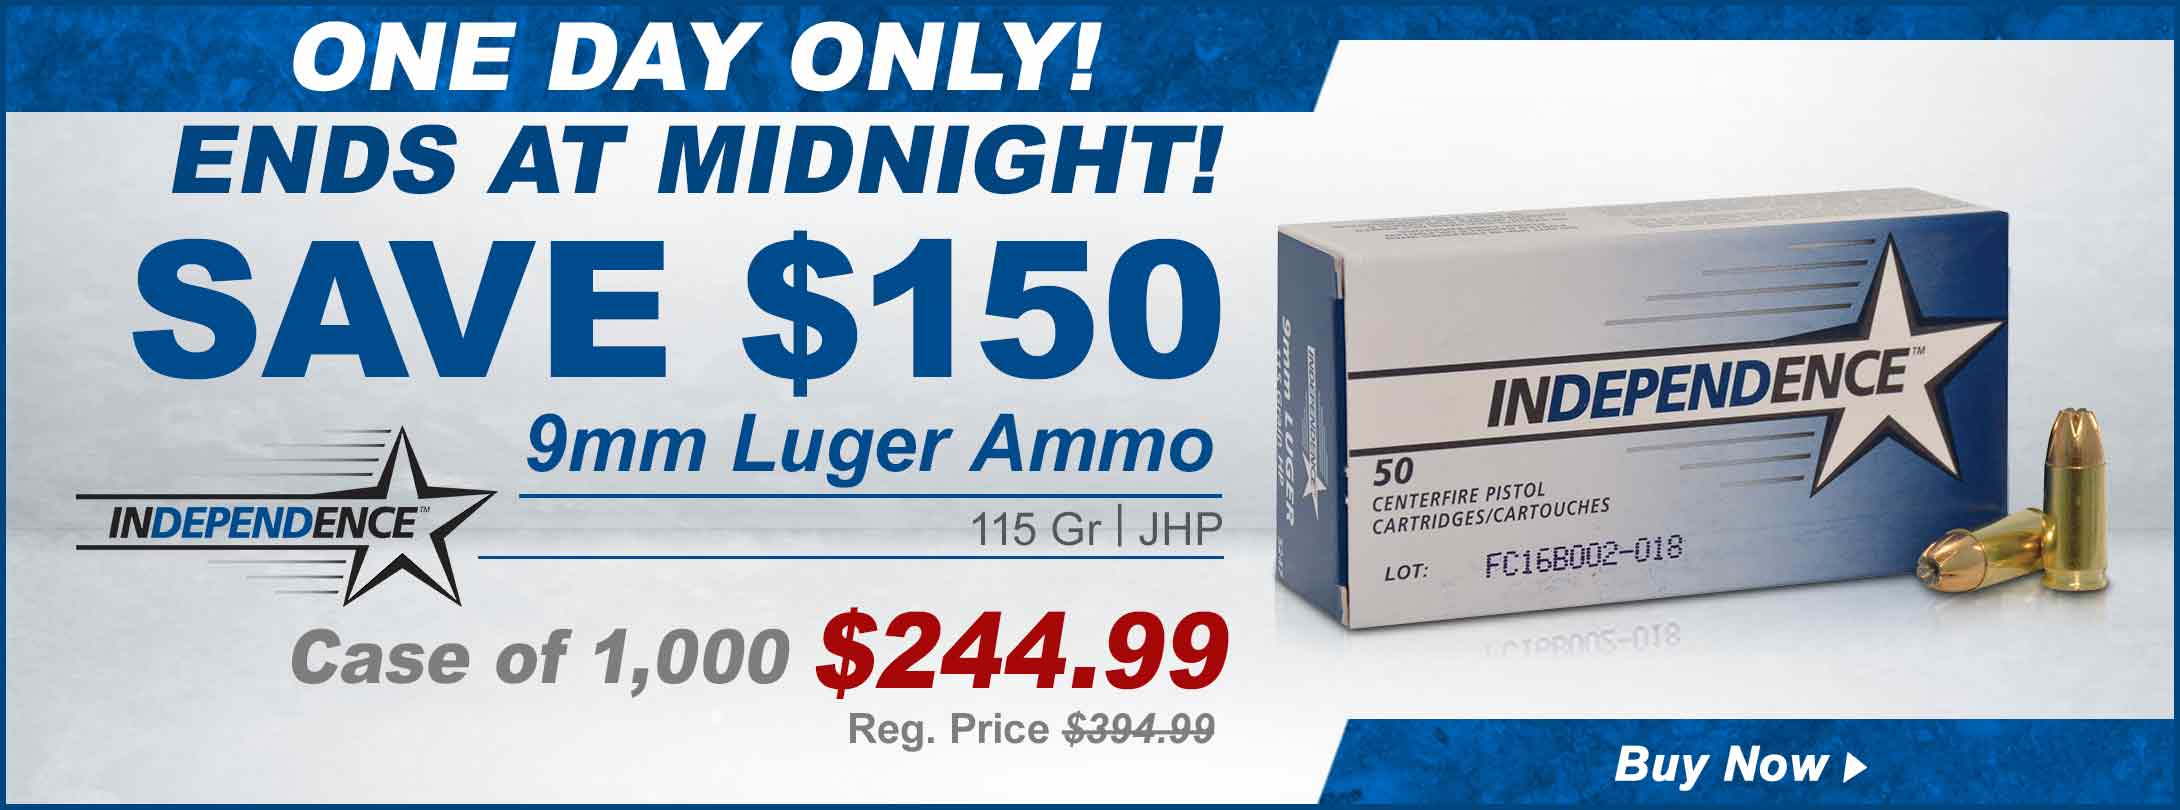 One Day Sale! Independence 9mm Ammo